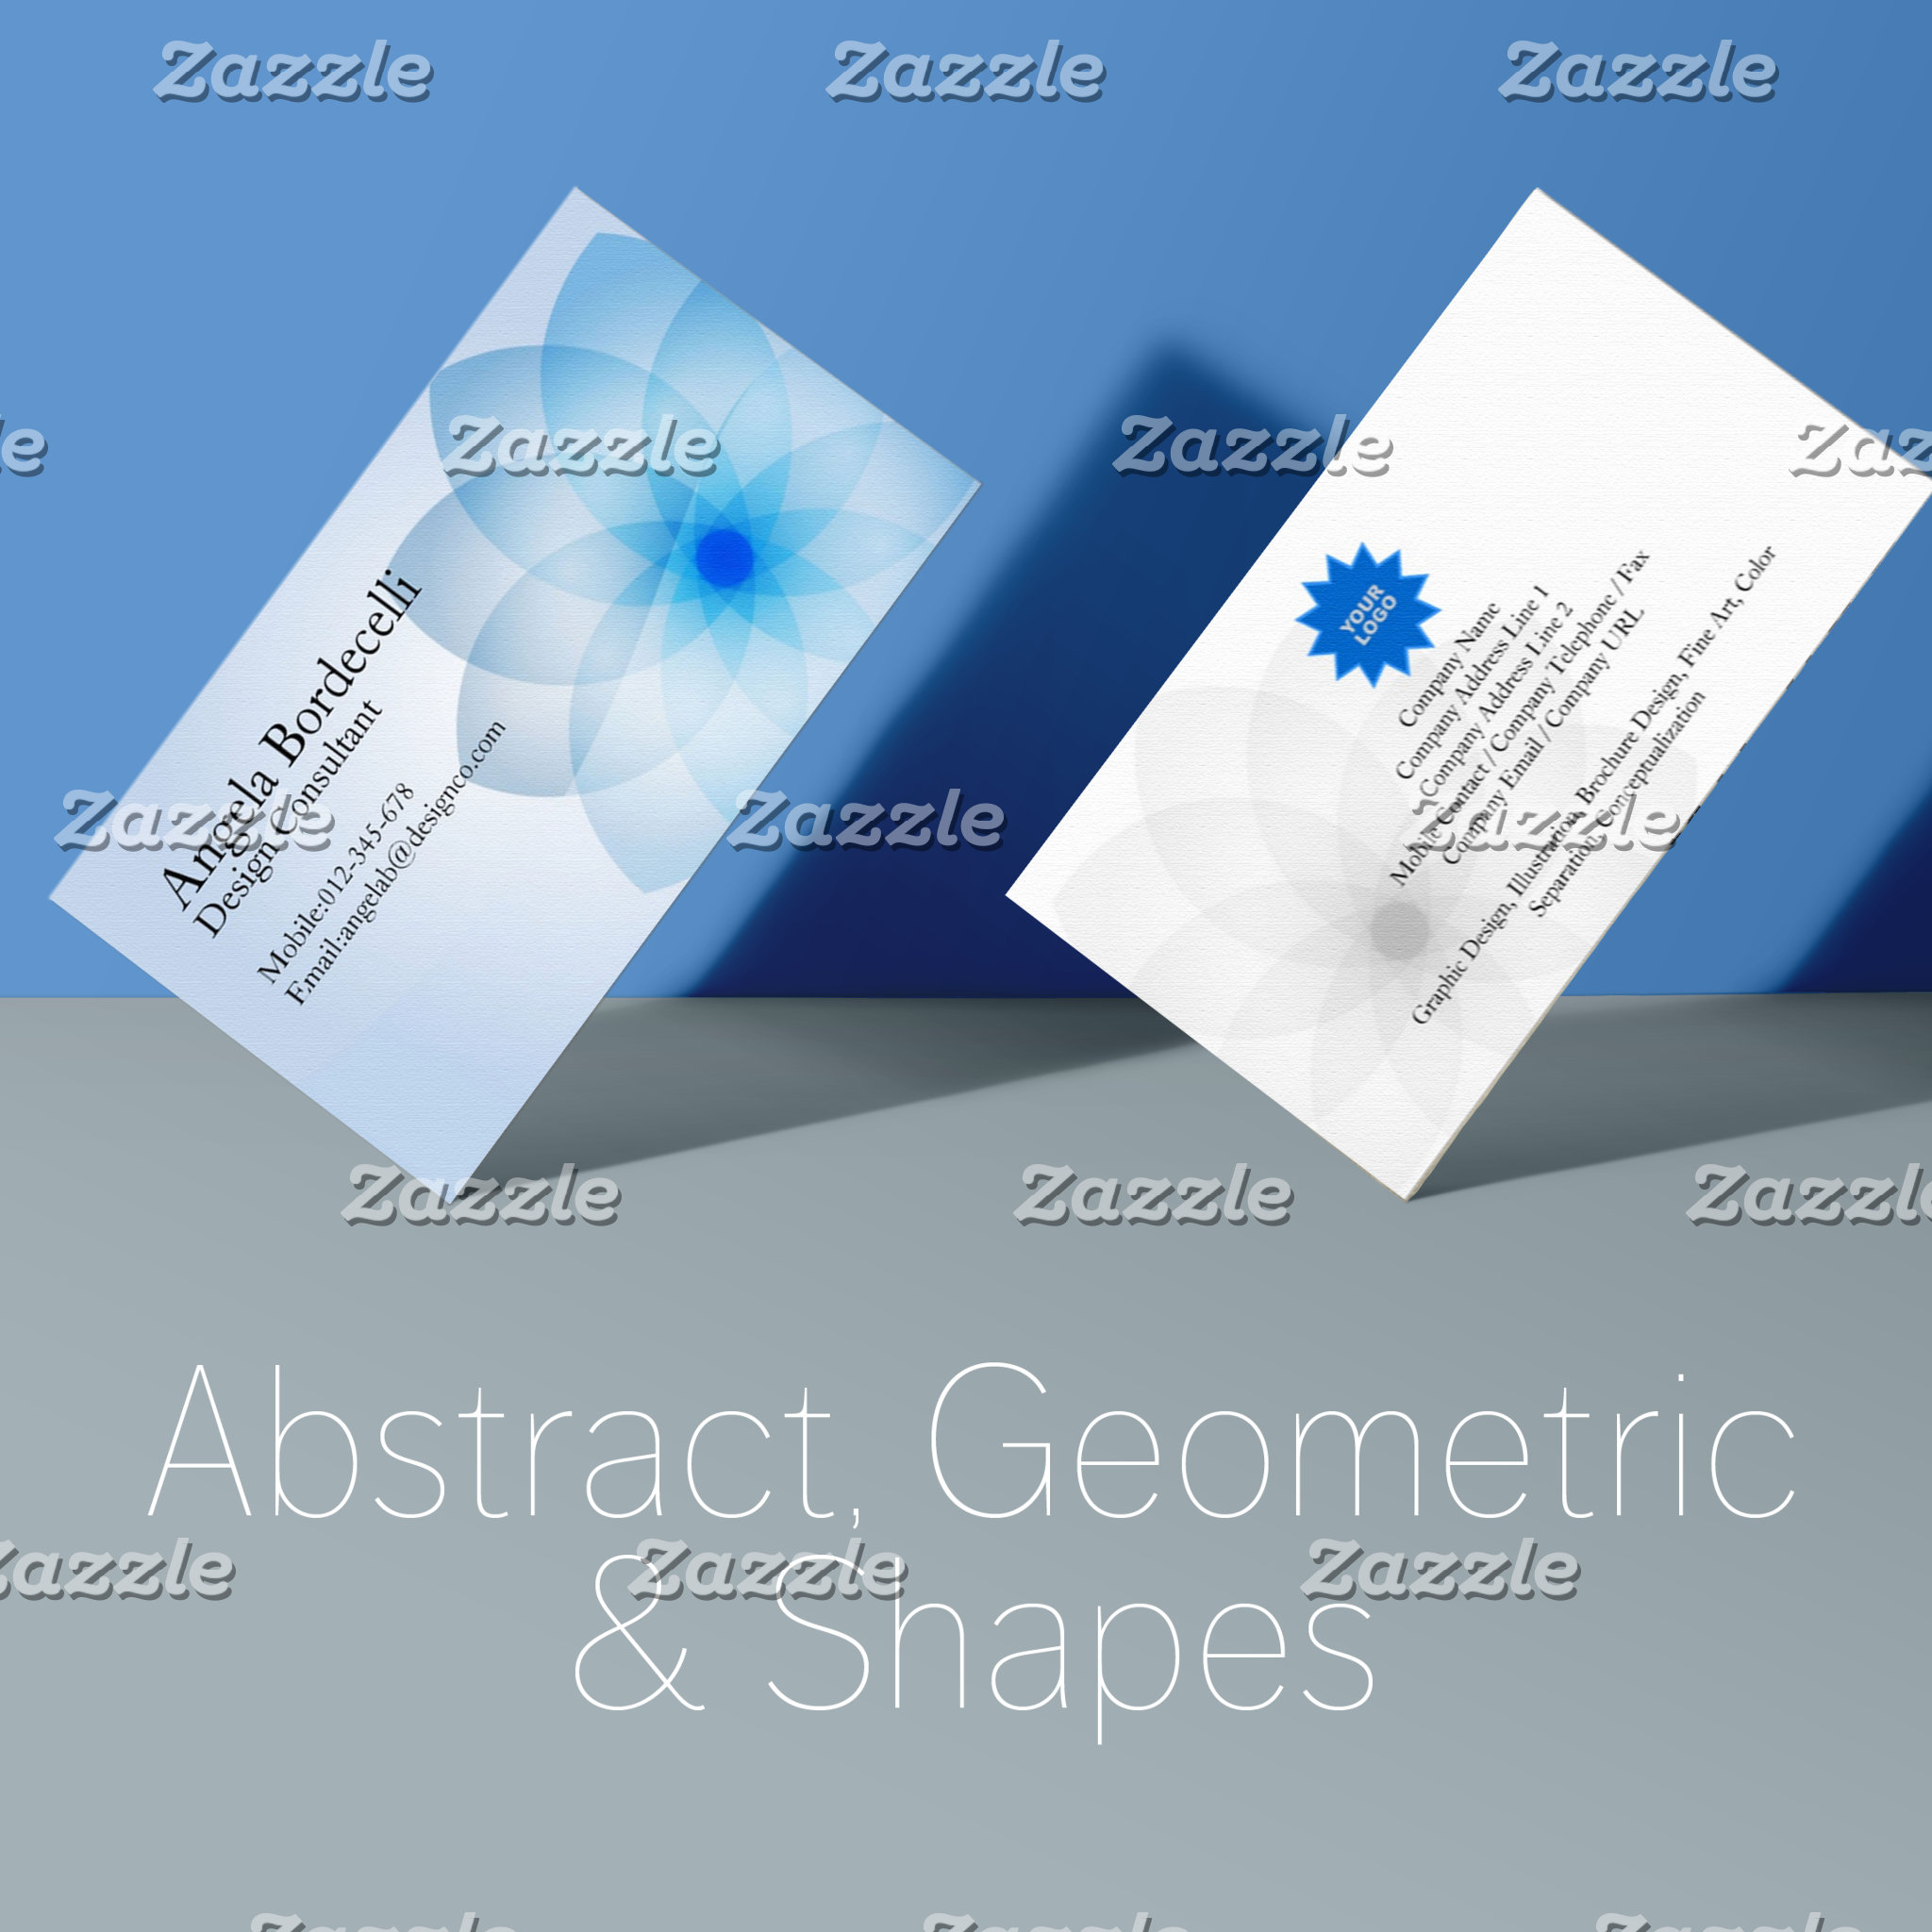 Abstract, Geometric and Shapes